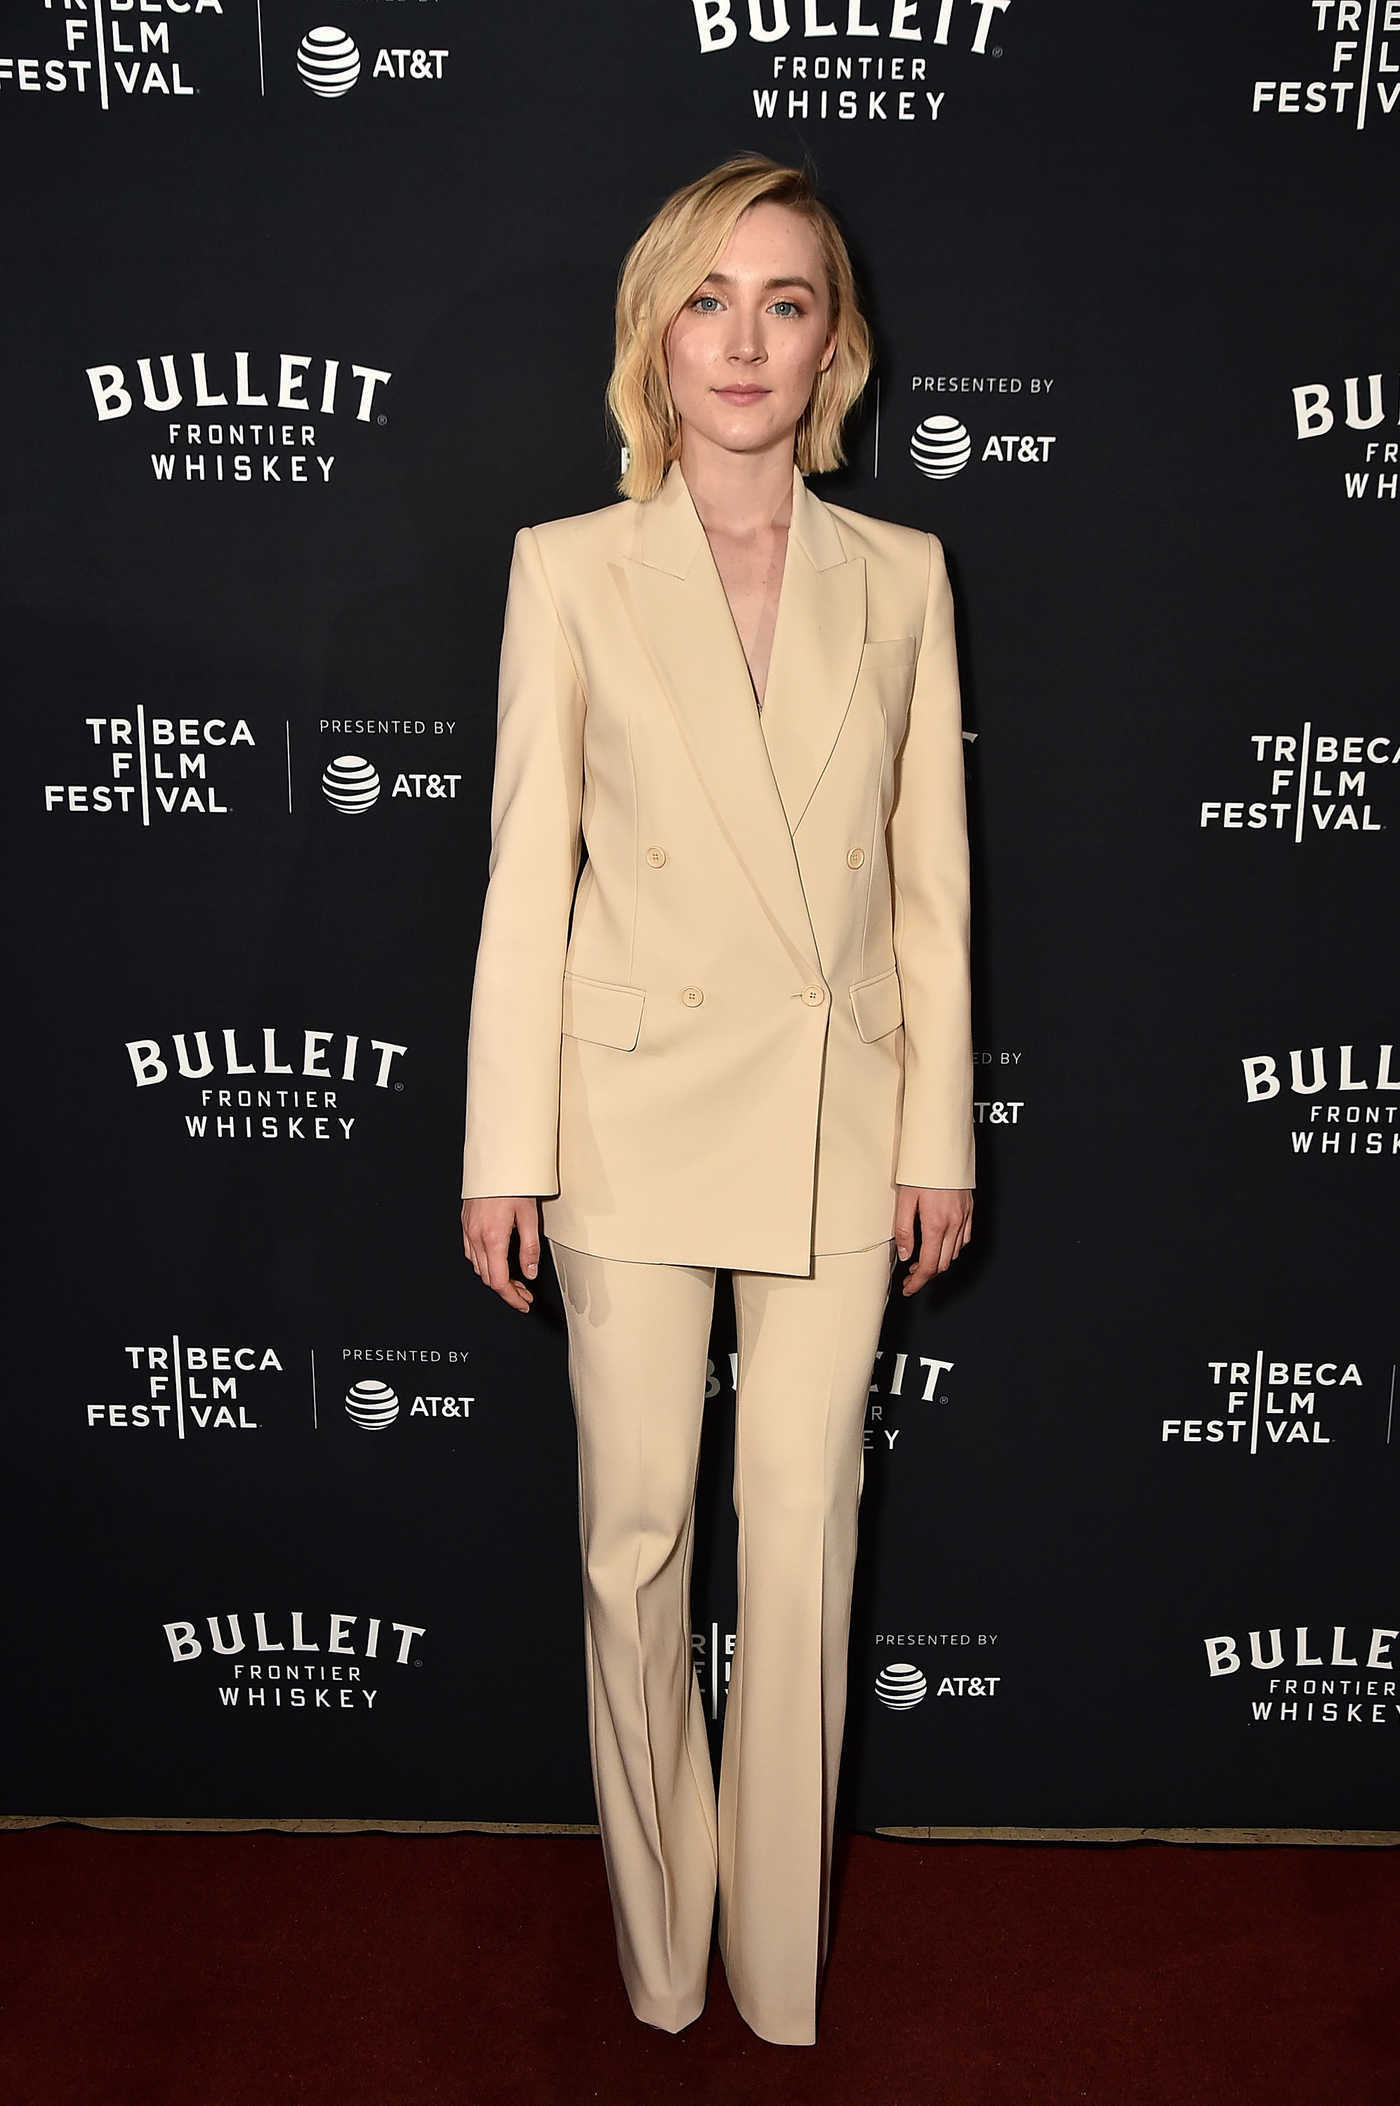 Saoirse Ronan at 2018 Tribeca Film Festival After-Party in NYC 04/21/2018